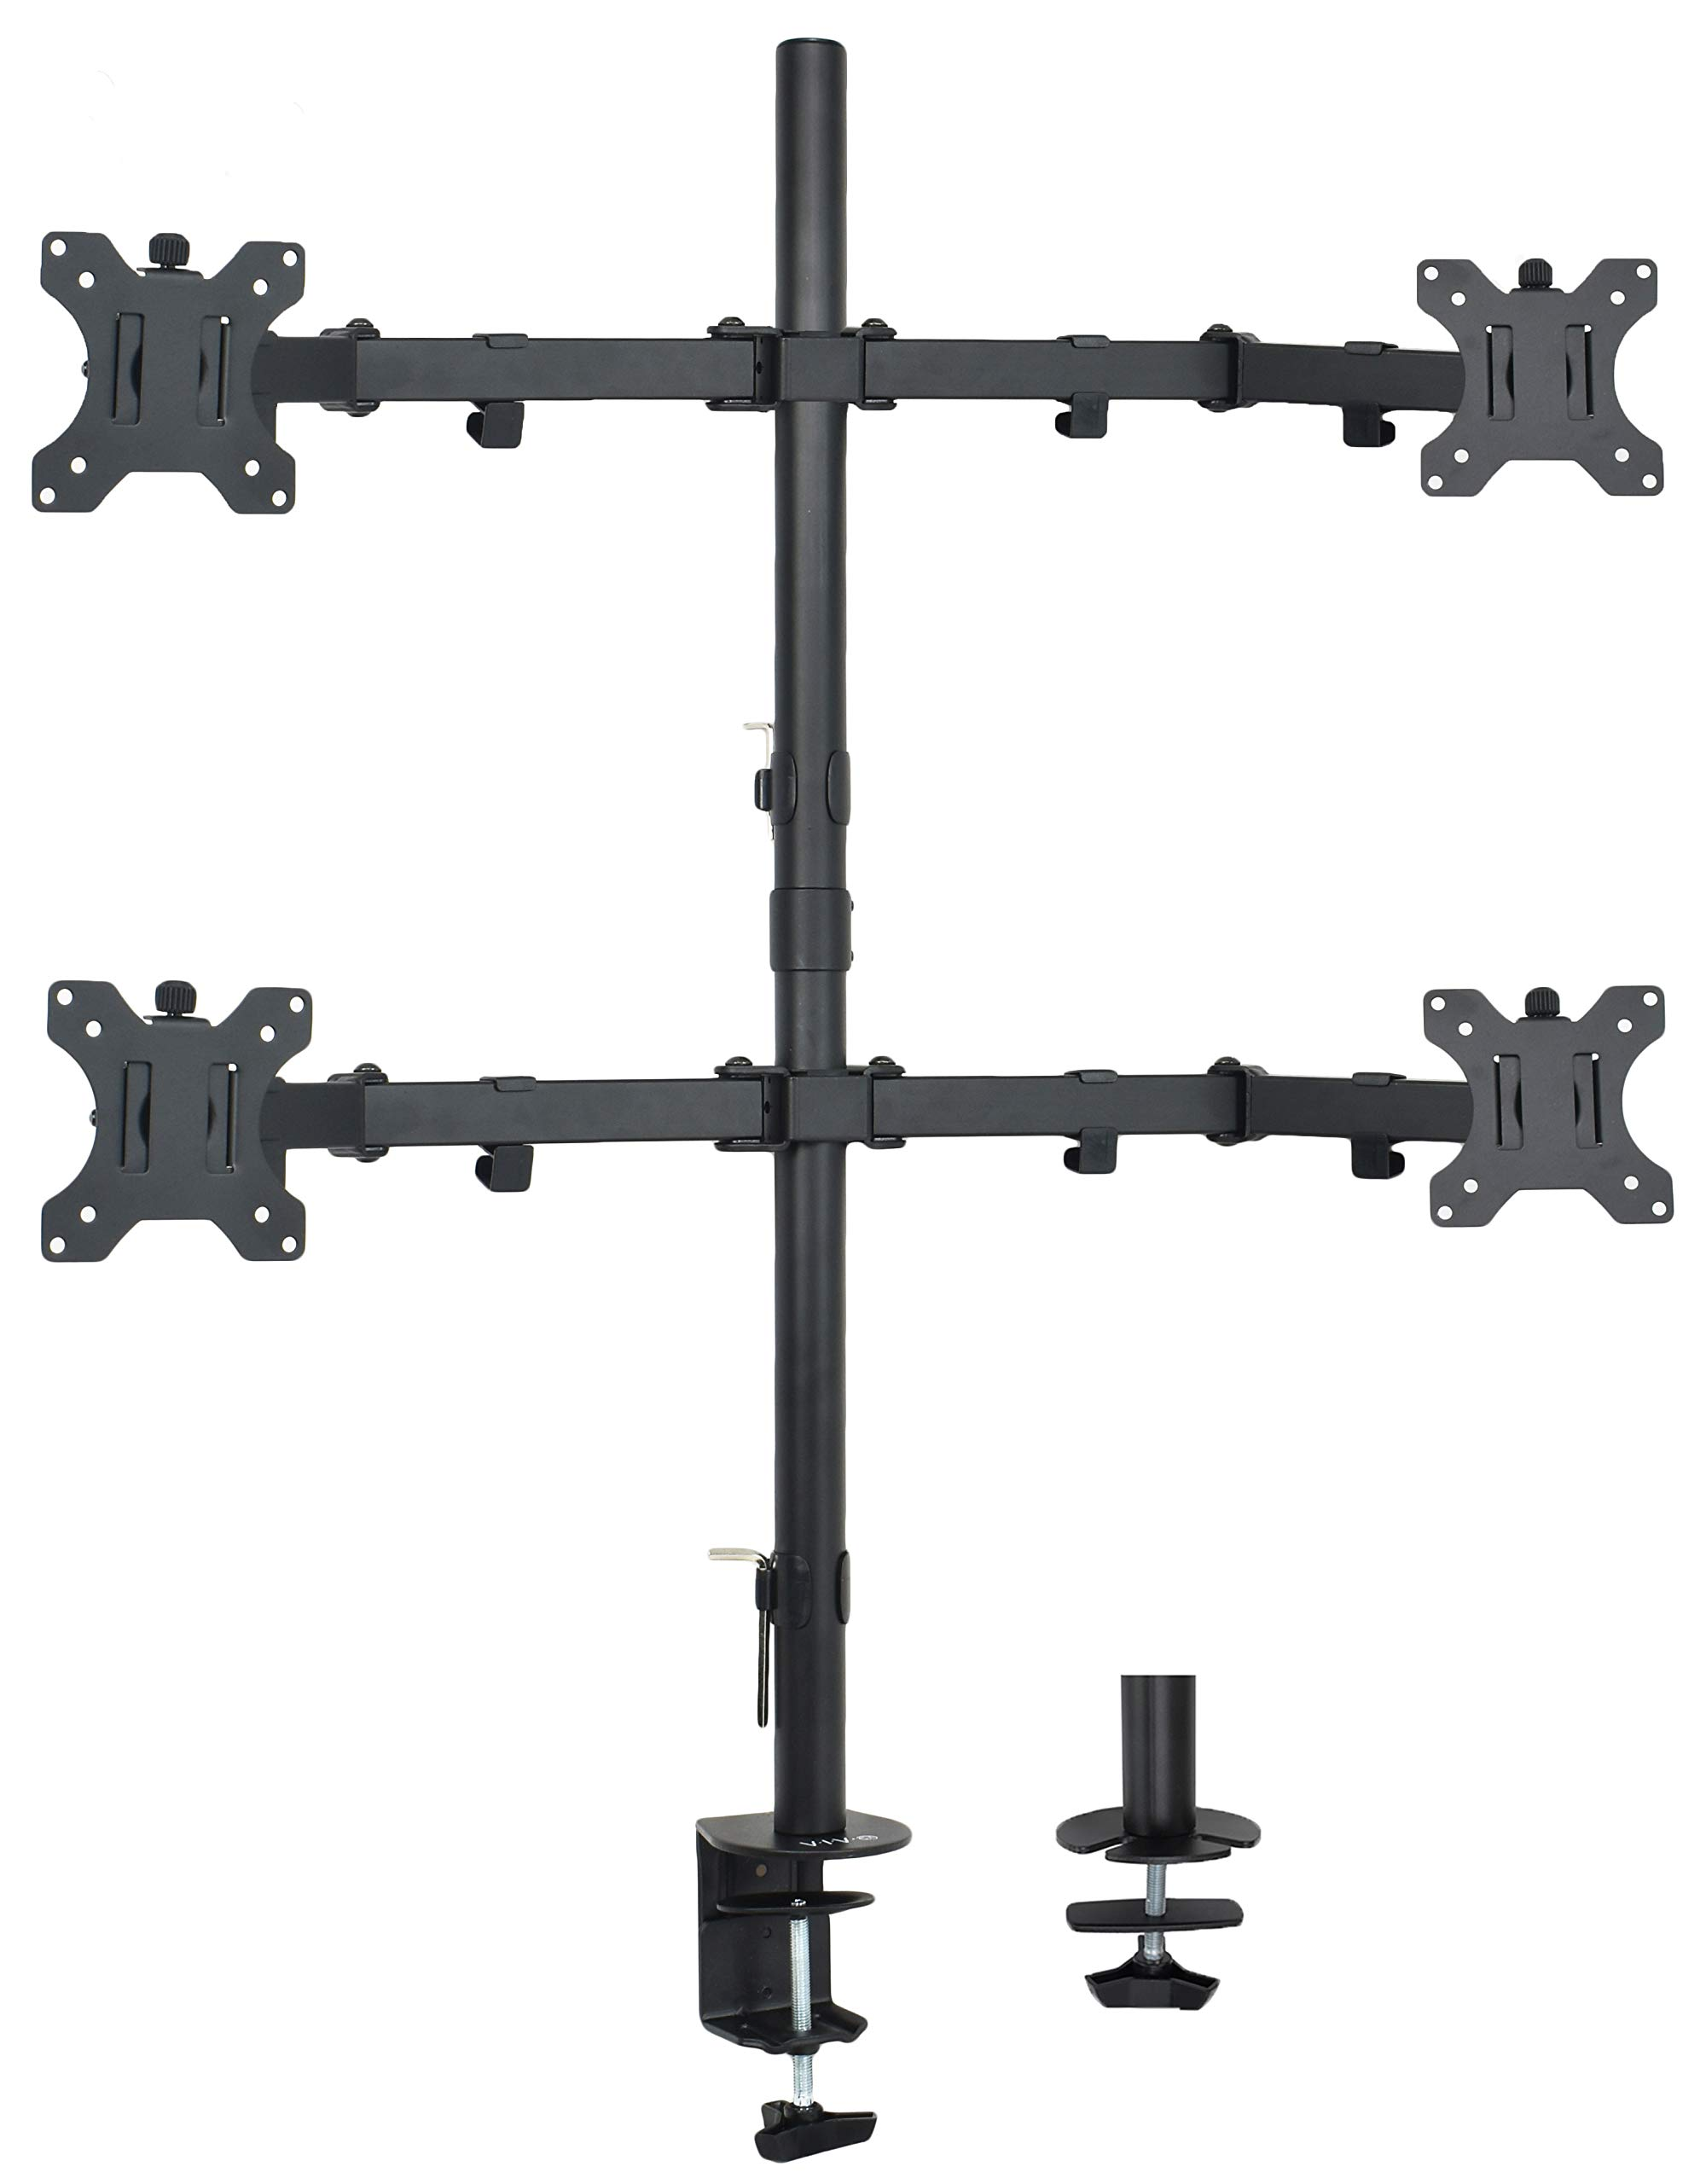 VIVO Quad Monitor Desk Mount, Heavy Duty Stand, Full Adjustable Arms and Grommet Mounting Option | Holds 4 Screens up to 30 inches (STAND-V004) by VIVO